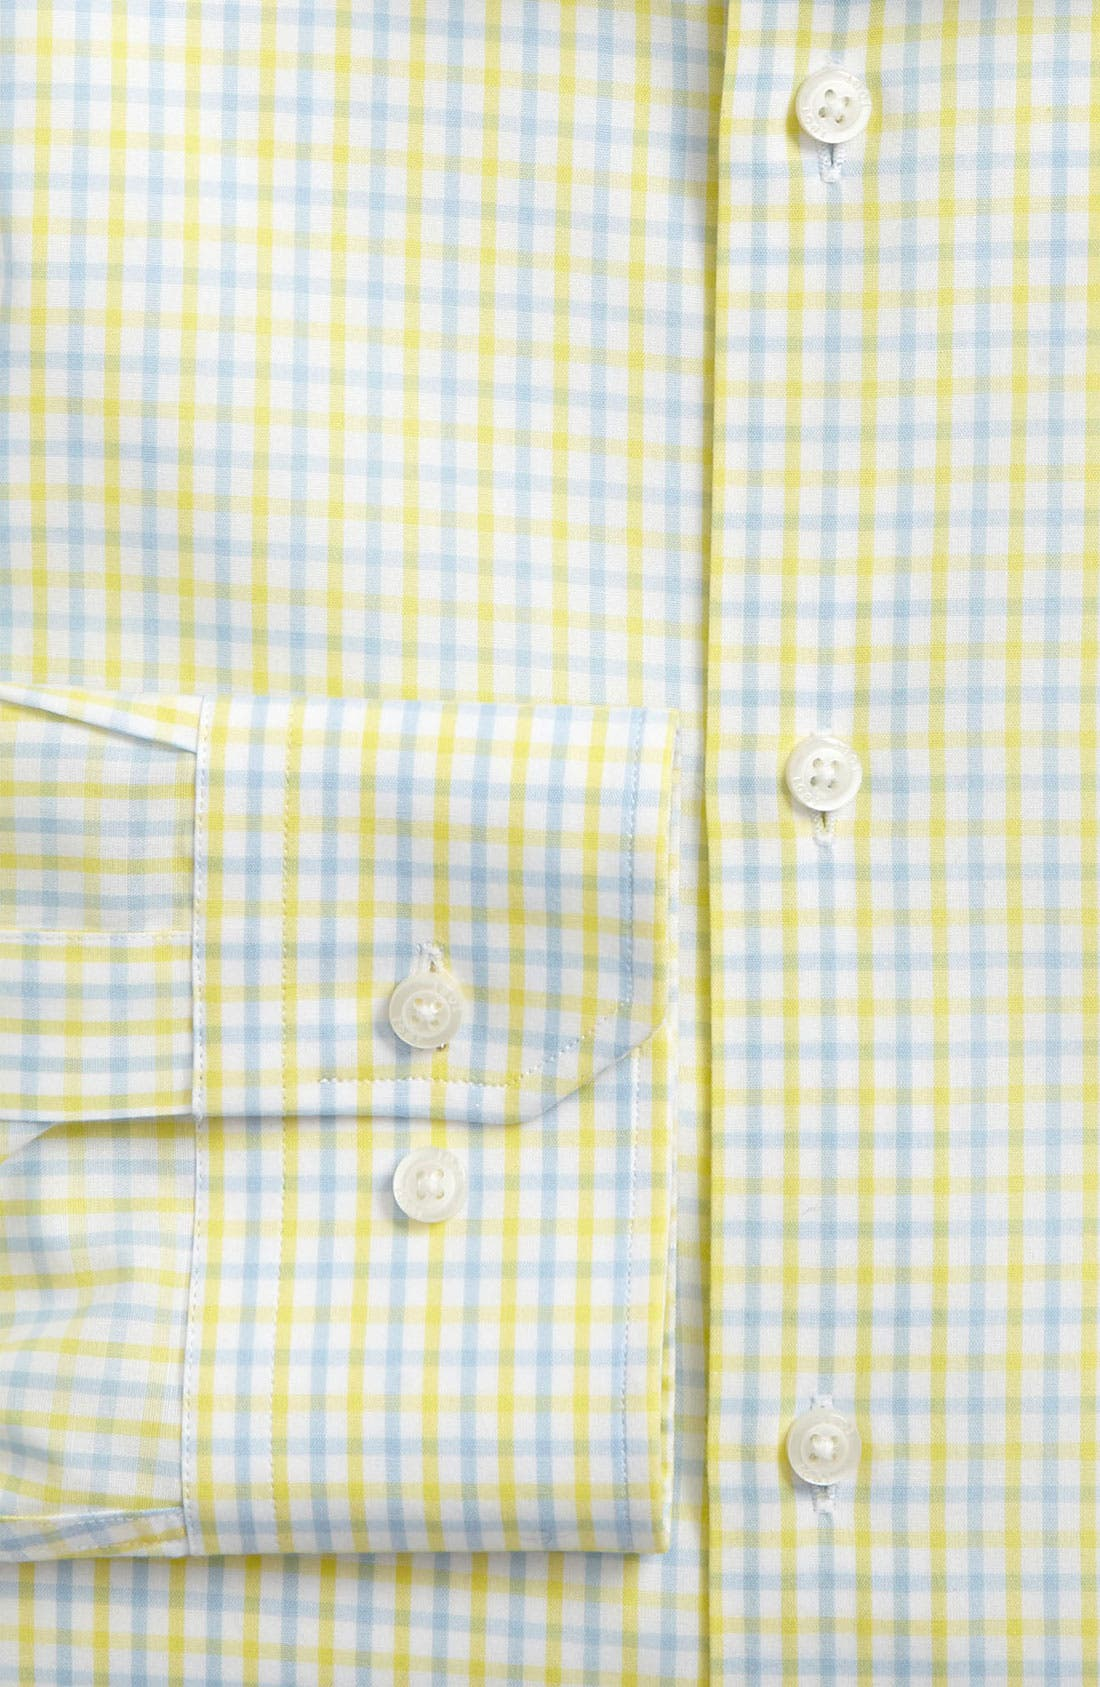 Alternate Image 2  - 1901 Trim Fit Dress Shirt (Online Only)